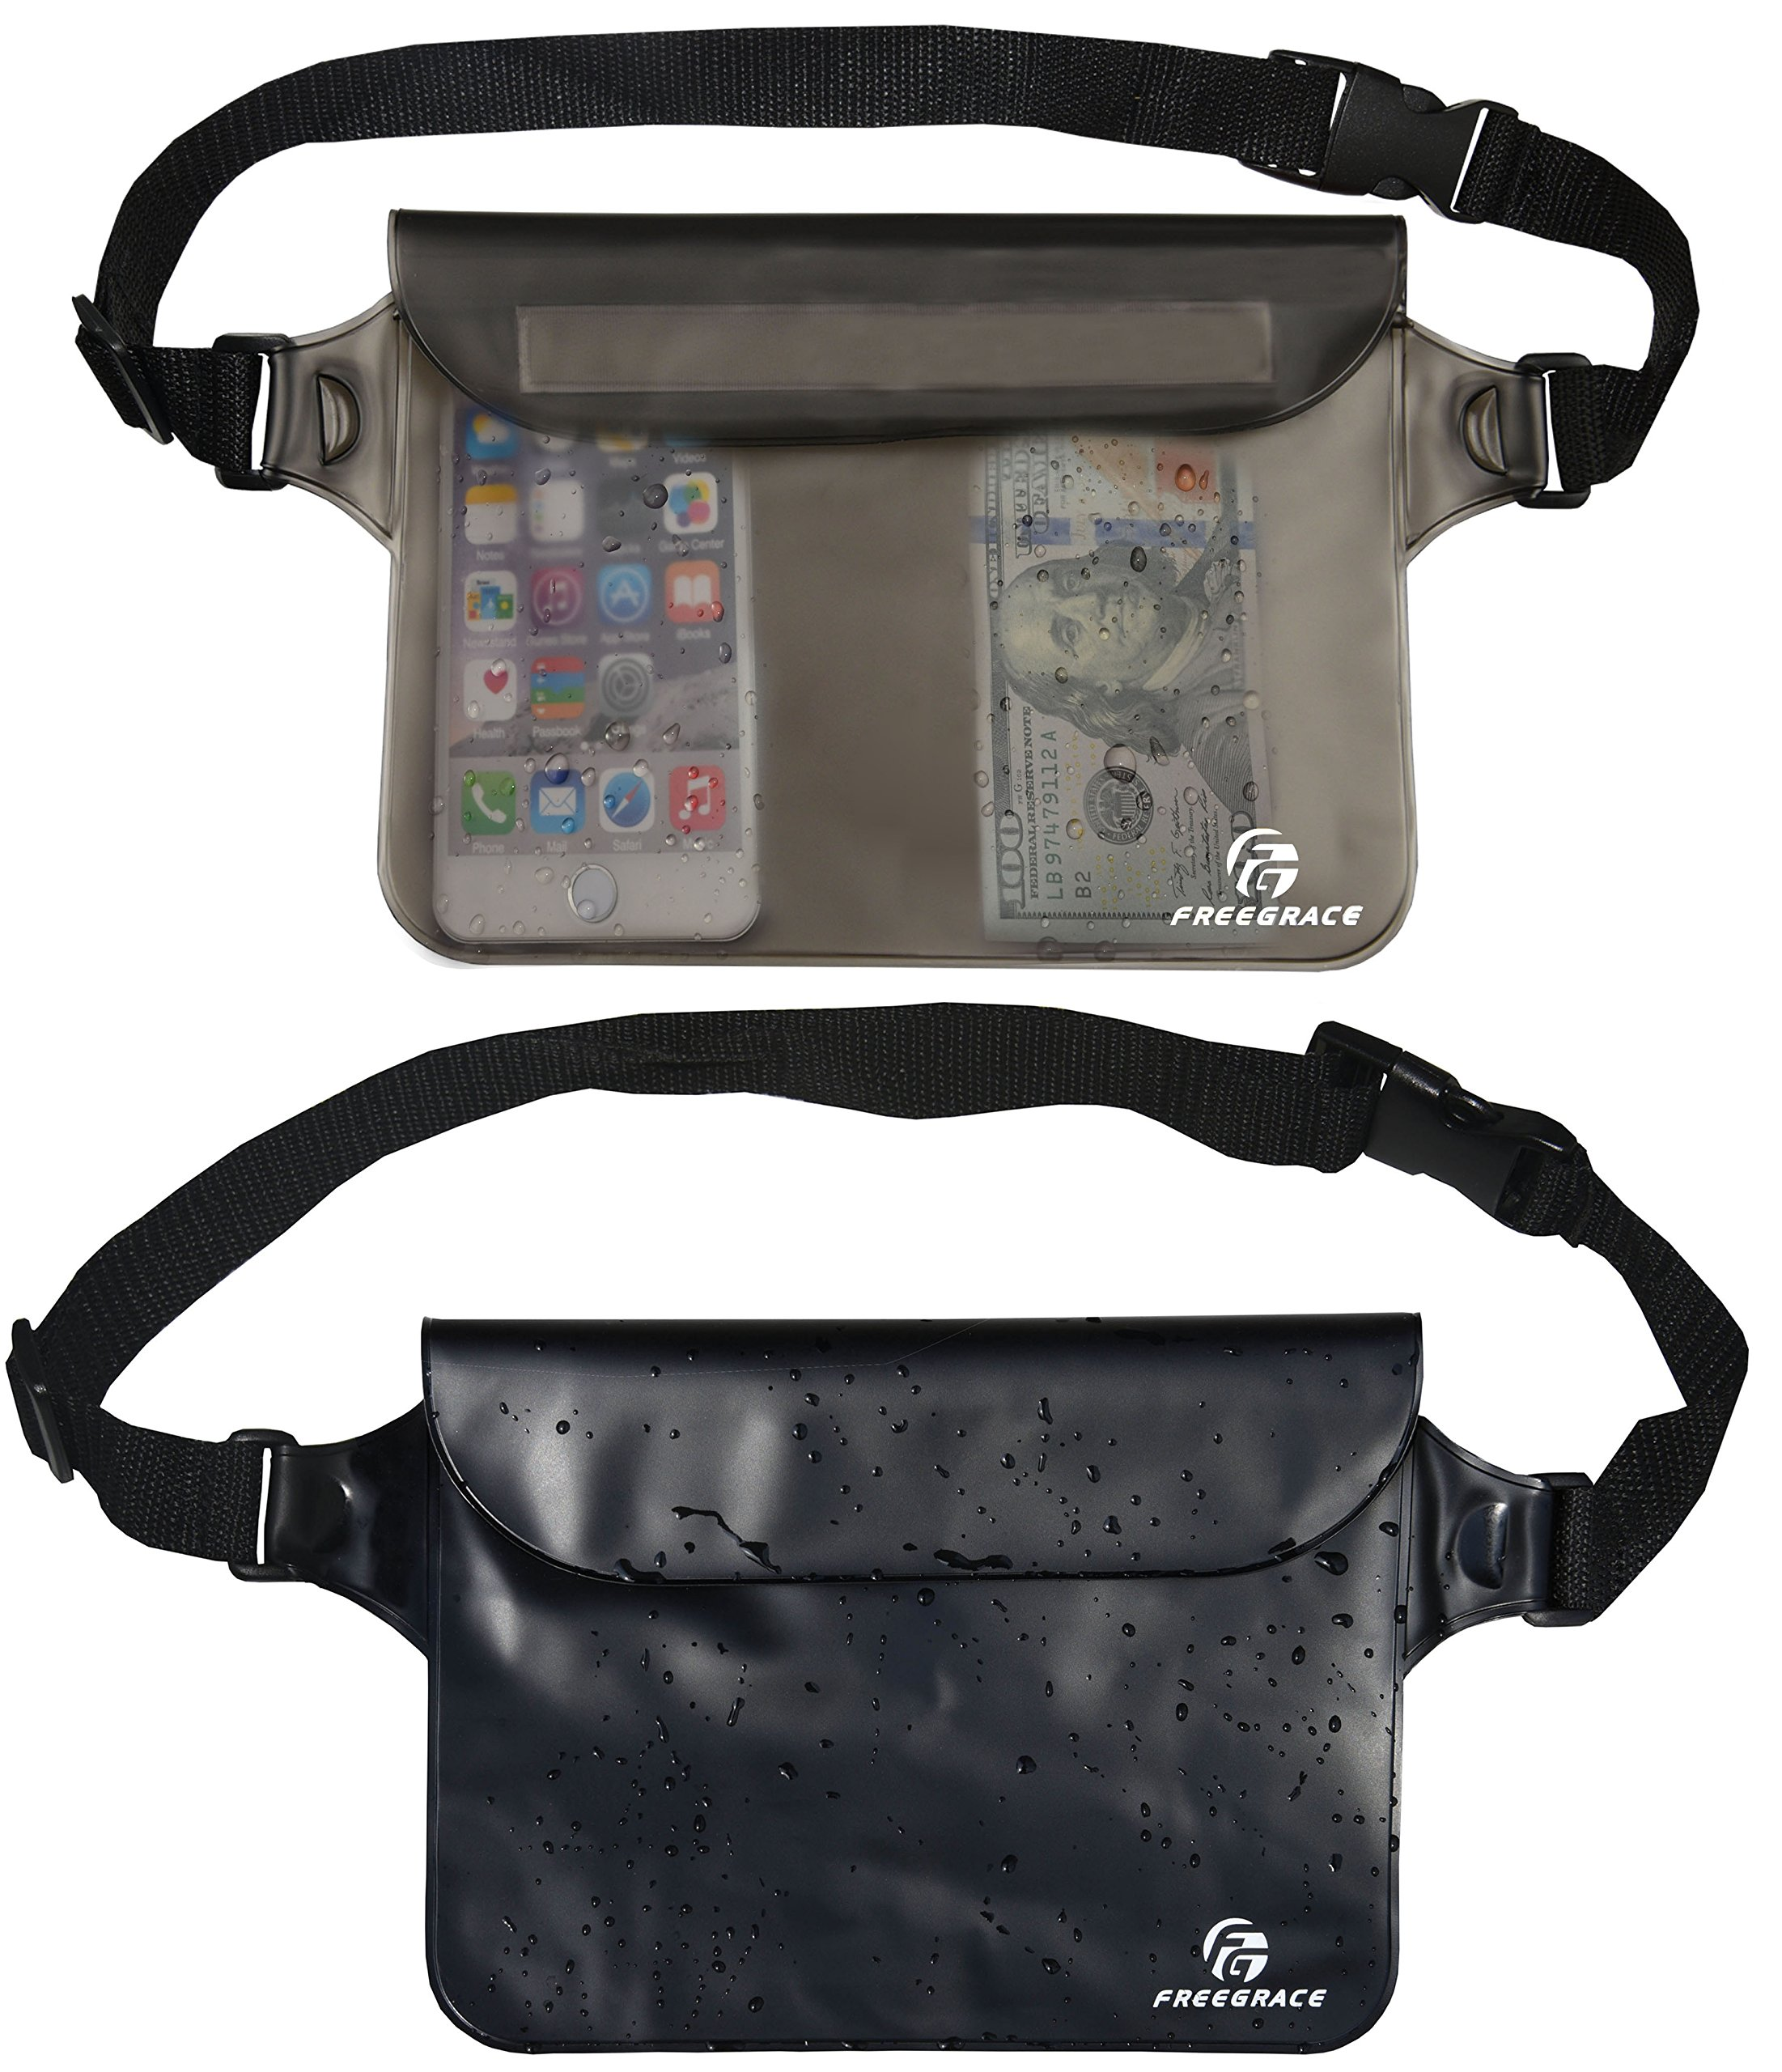 Freegrace Premium Waterproof Pouch Set with Waist Shoulder Strap - Best Way  to Keep Your 5604be7efc